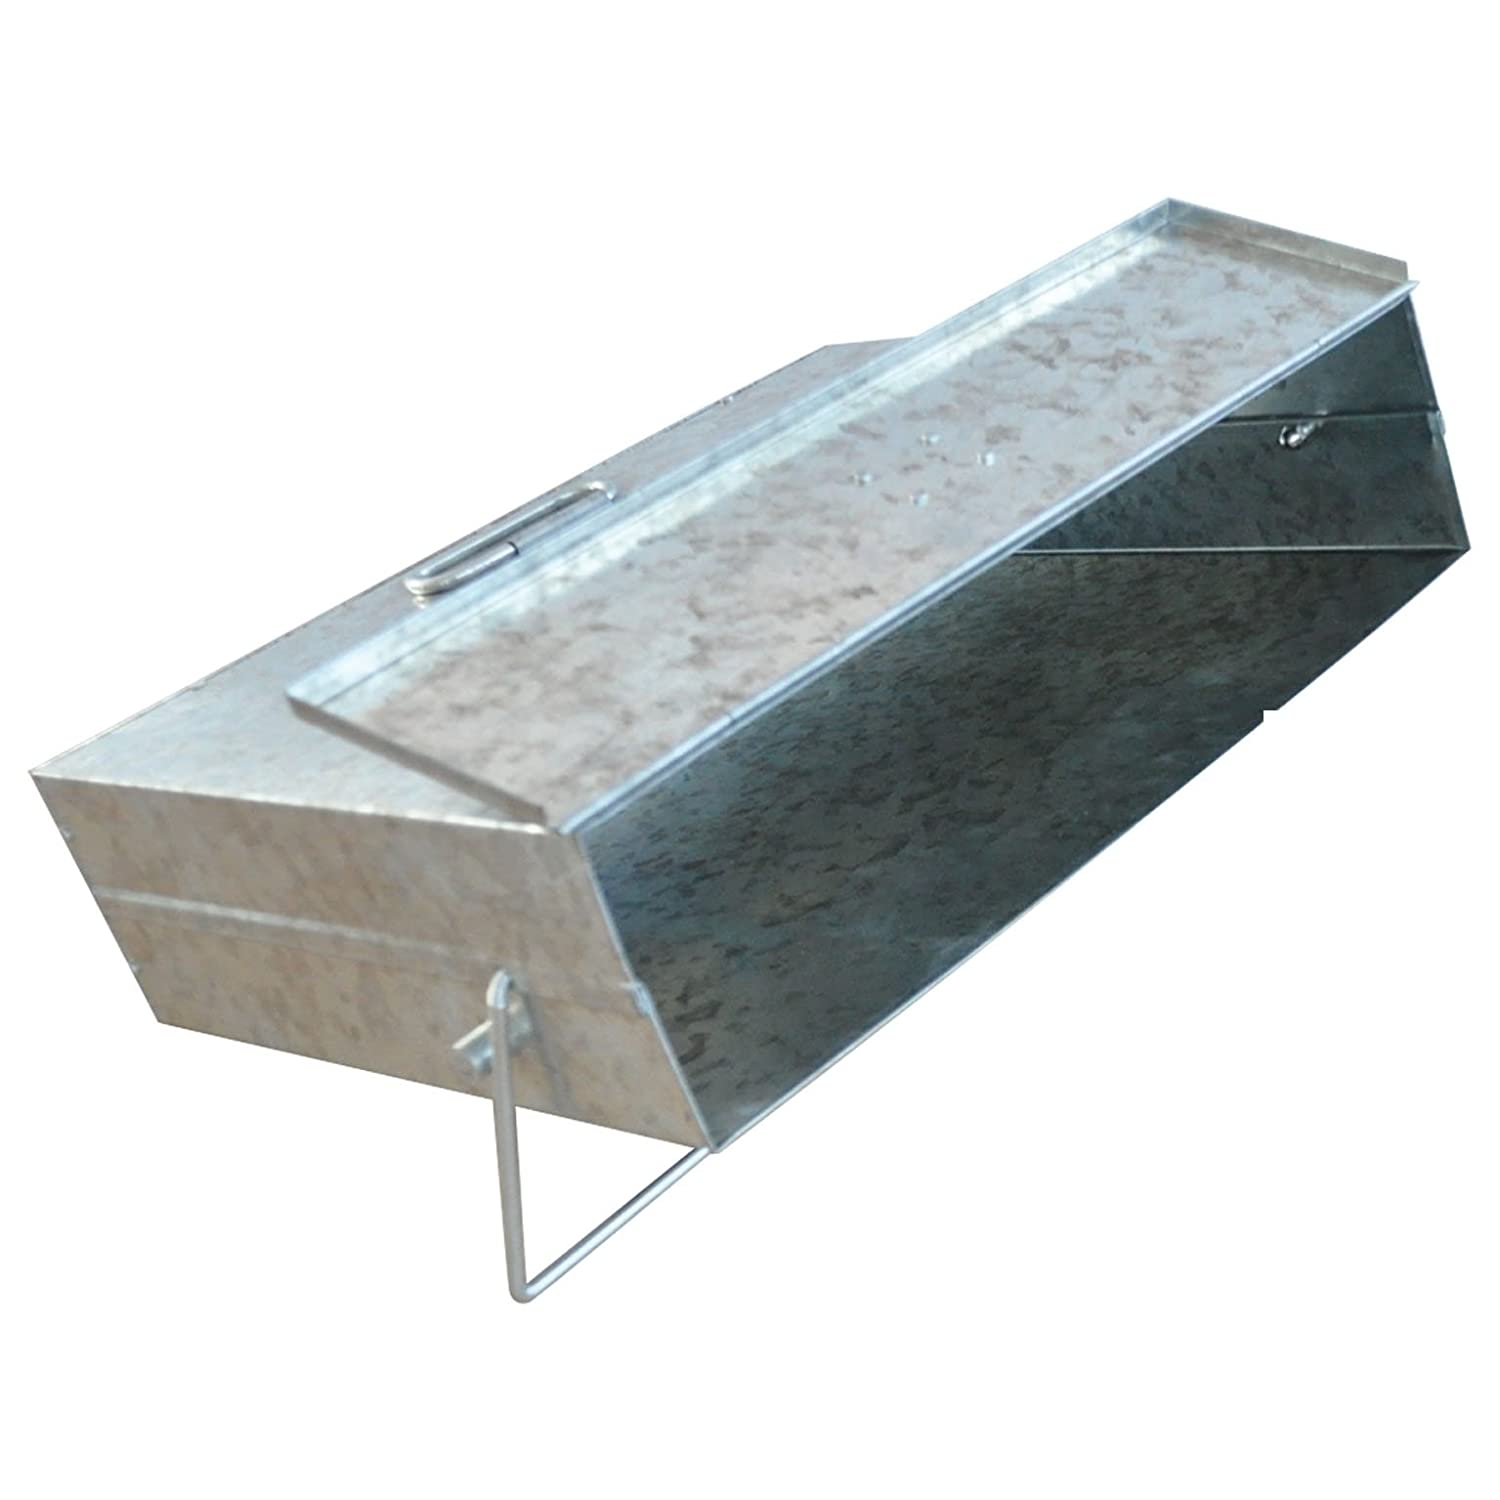 New De Vielle Galvanised Hot & Cold Fireplace Ash Carrier Box Tidy Tippy Metal for Stove Coal Wood Fire